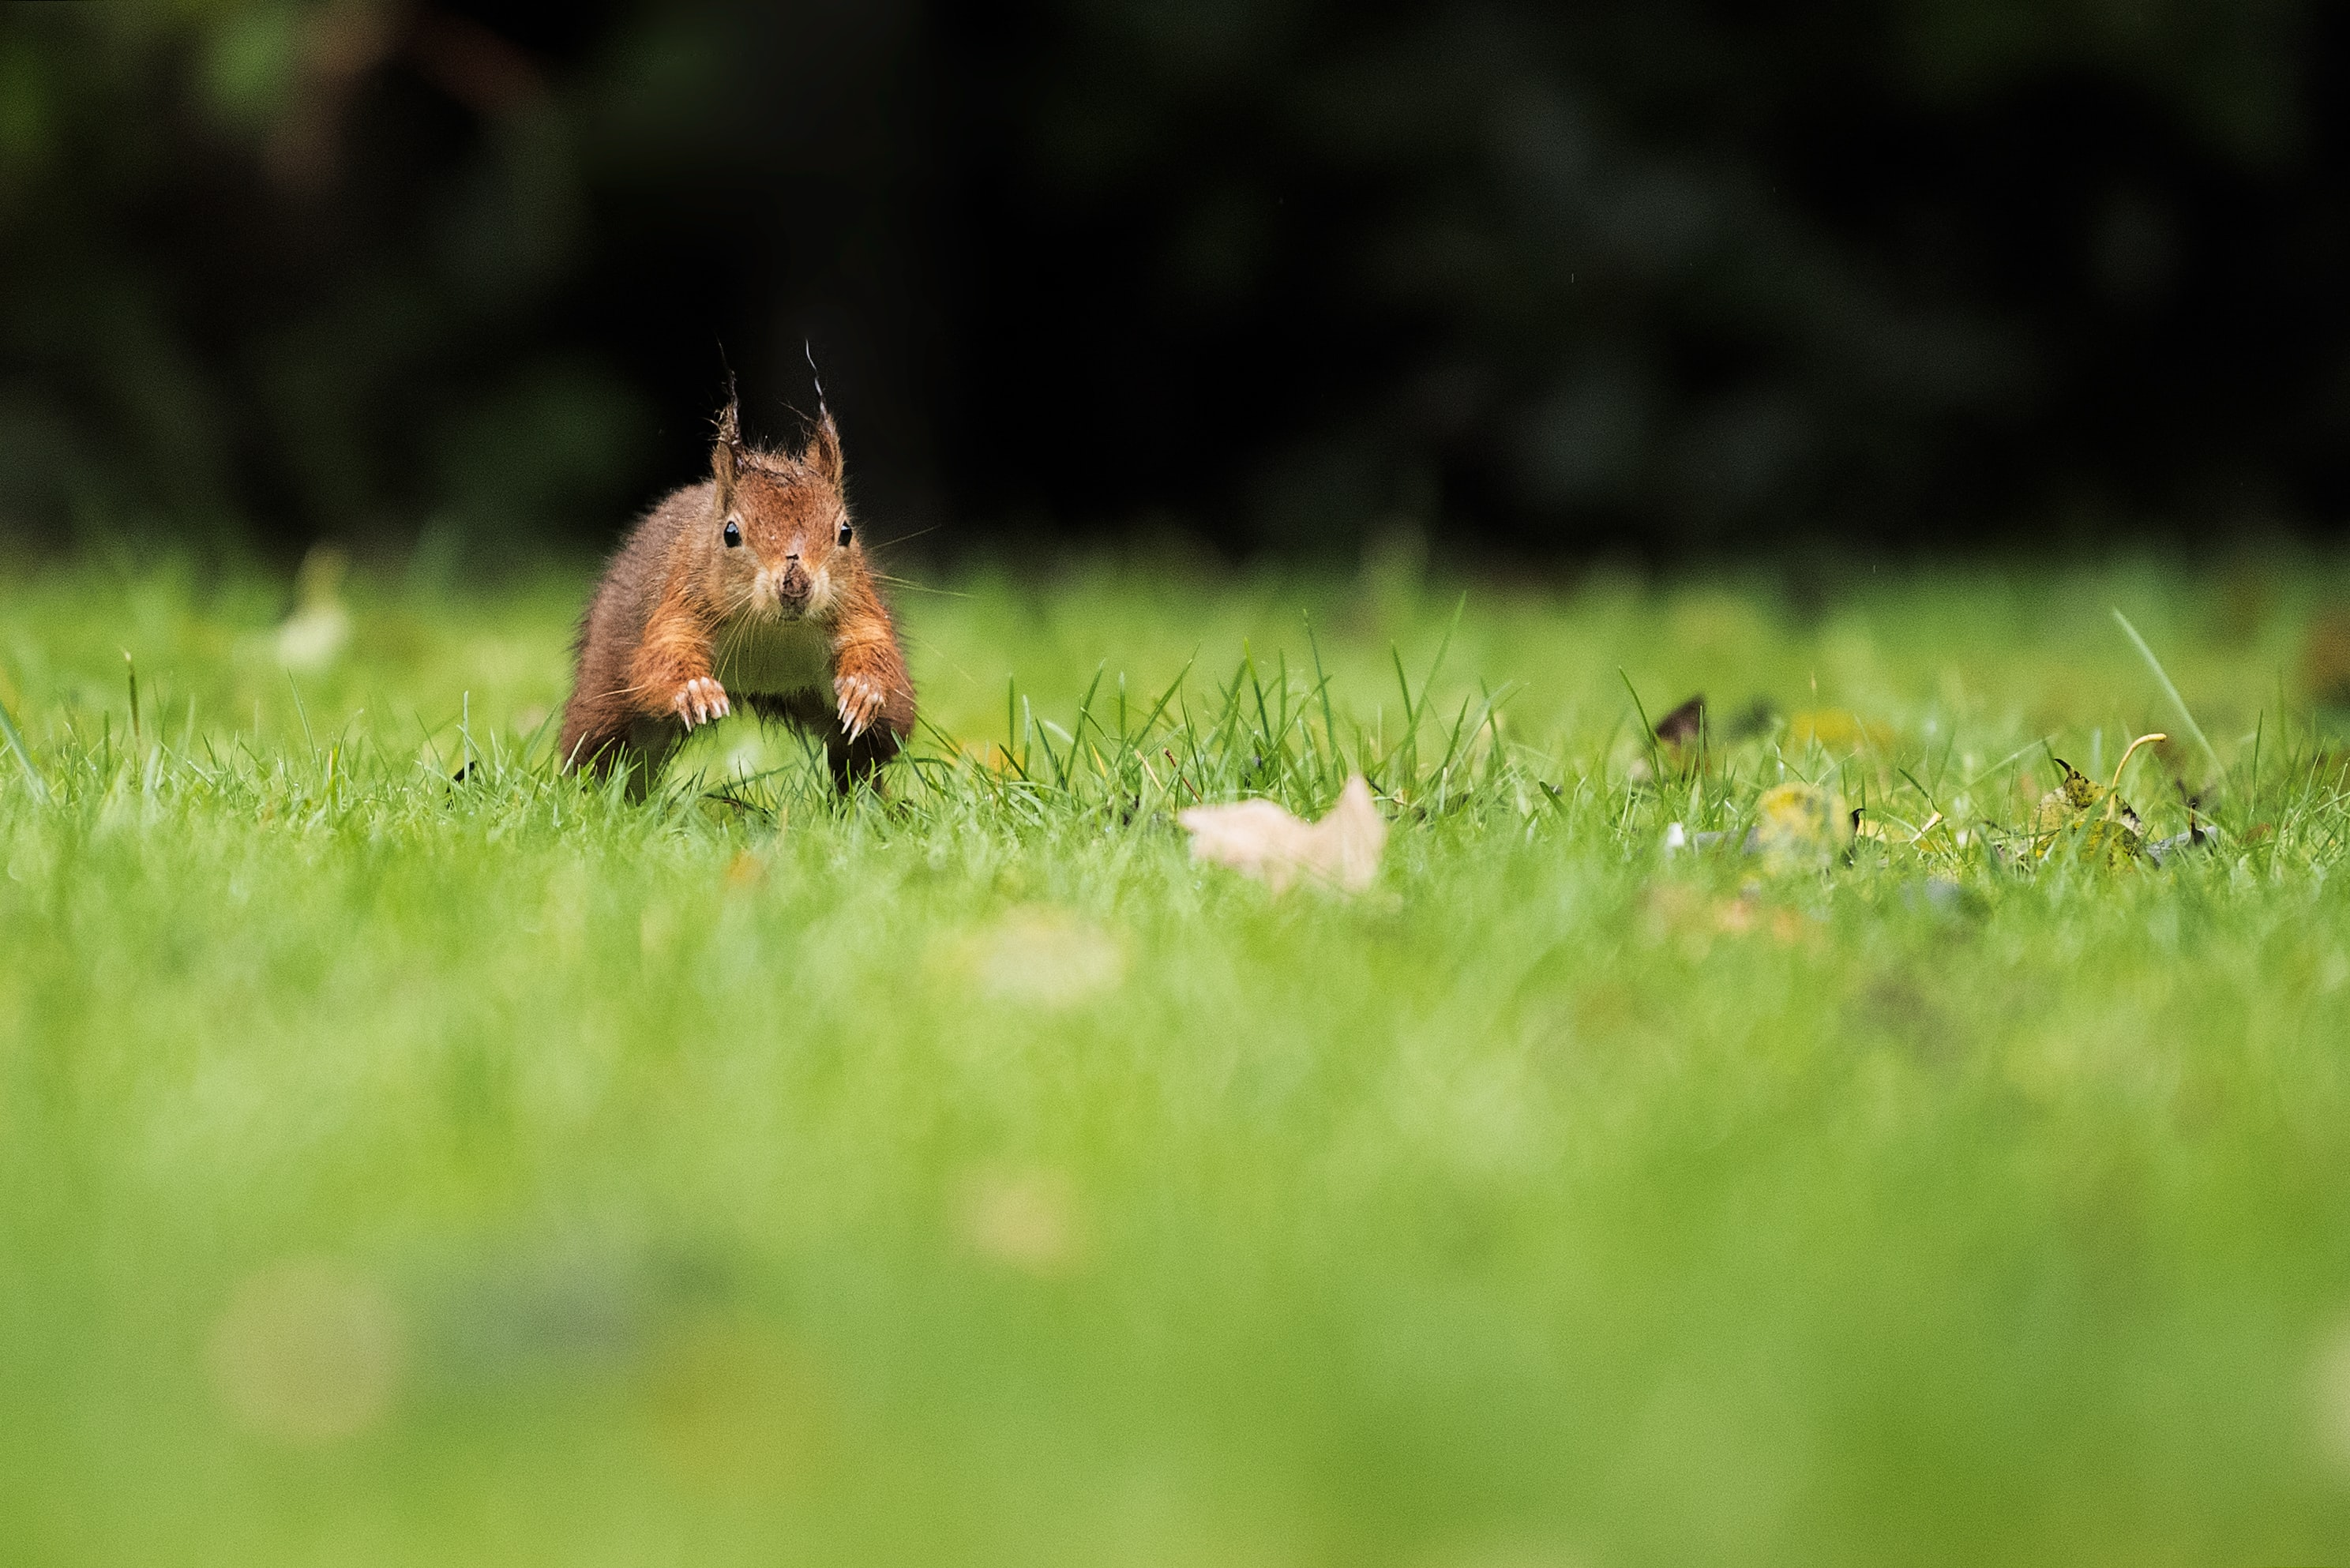 selective focus photography of brown squirrel running on green grass field